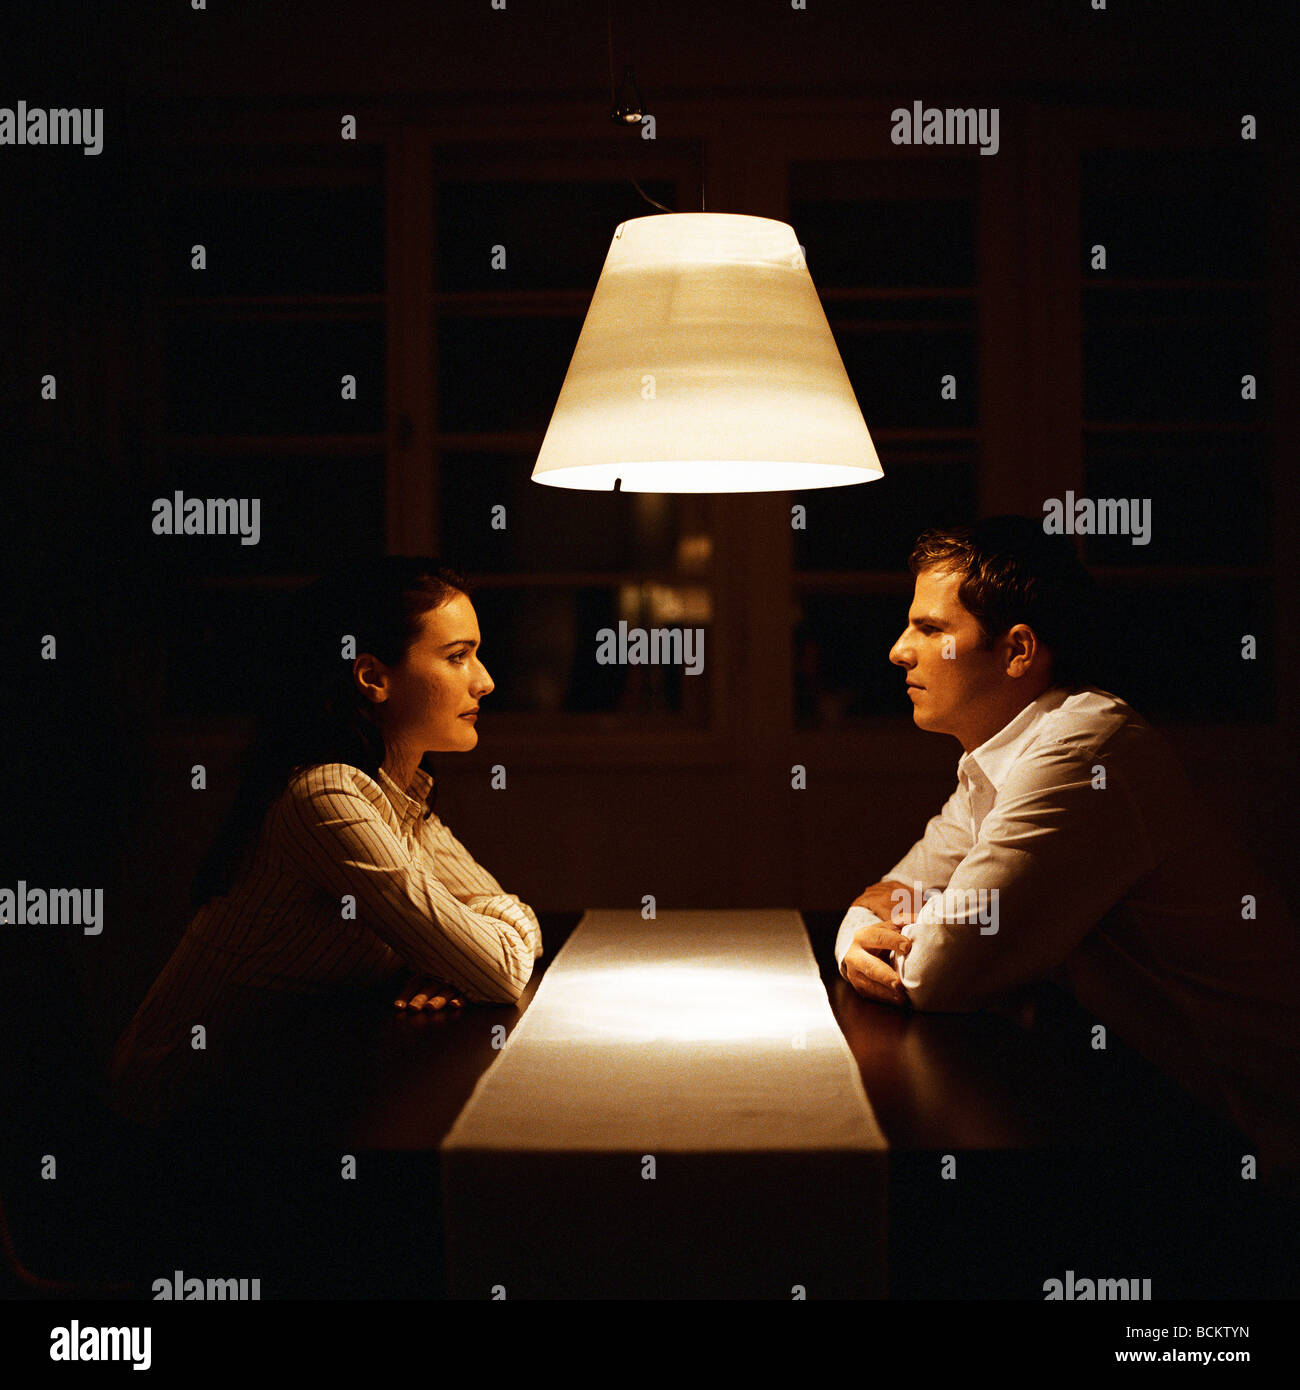 Man and woman face to face at table - Stock Image